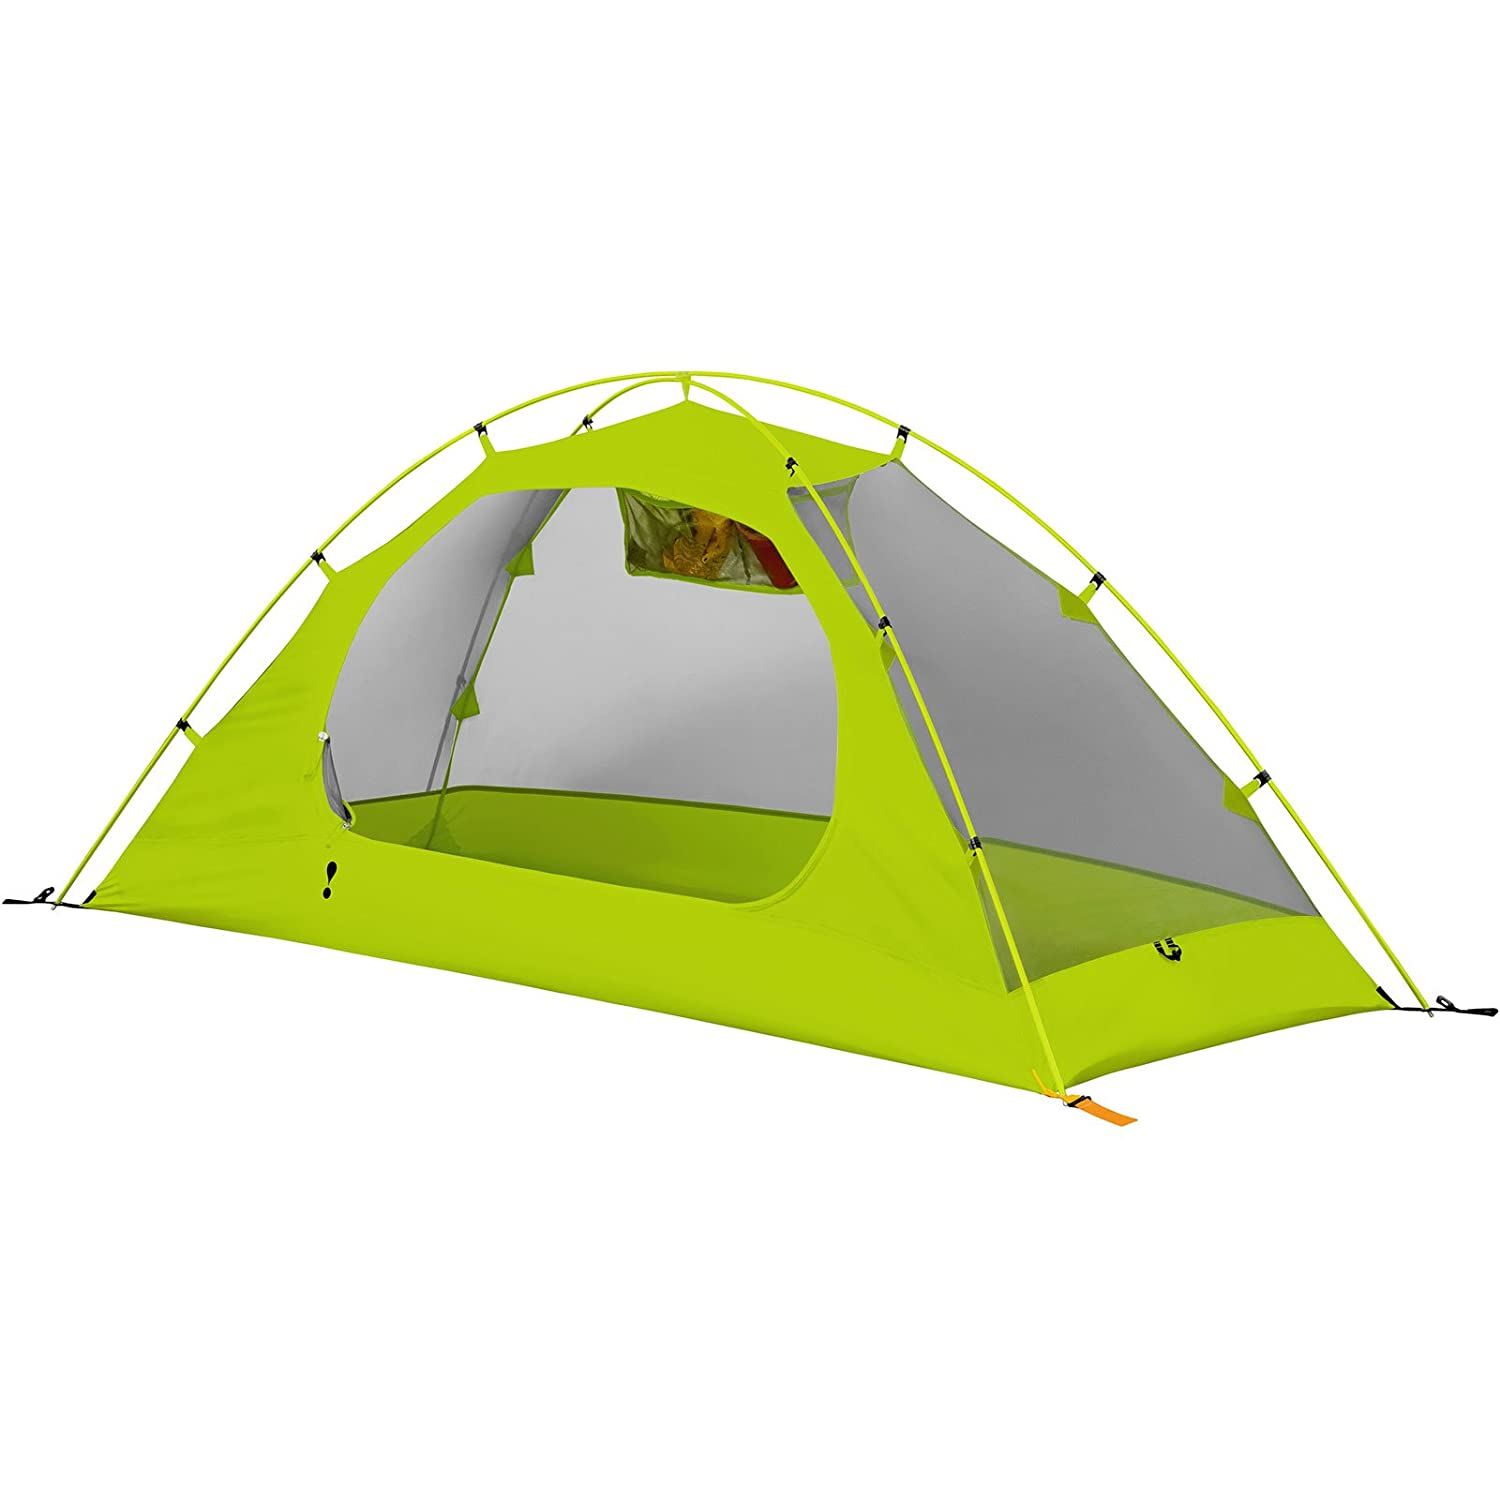 http://cleveradventurer.com/best-eureka-tents-reviews/#tab-con-11